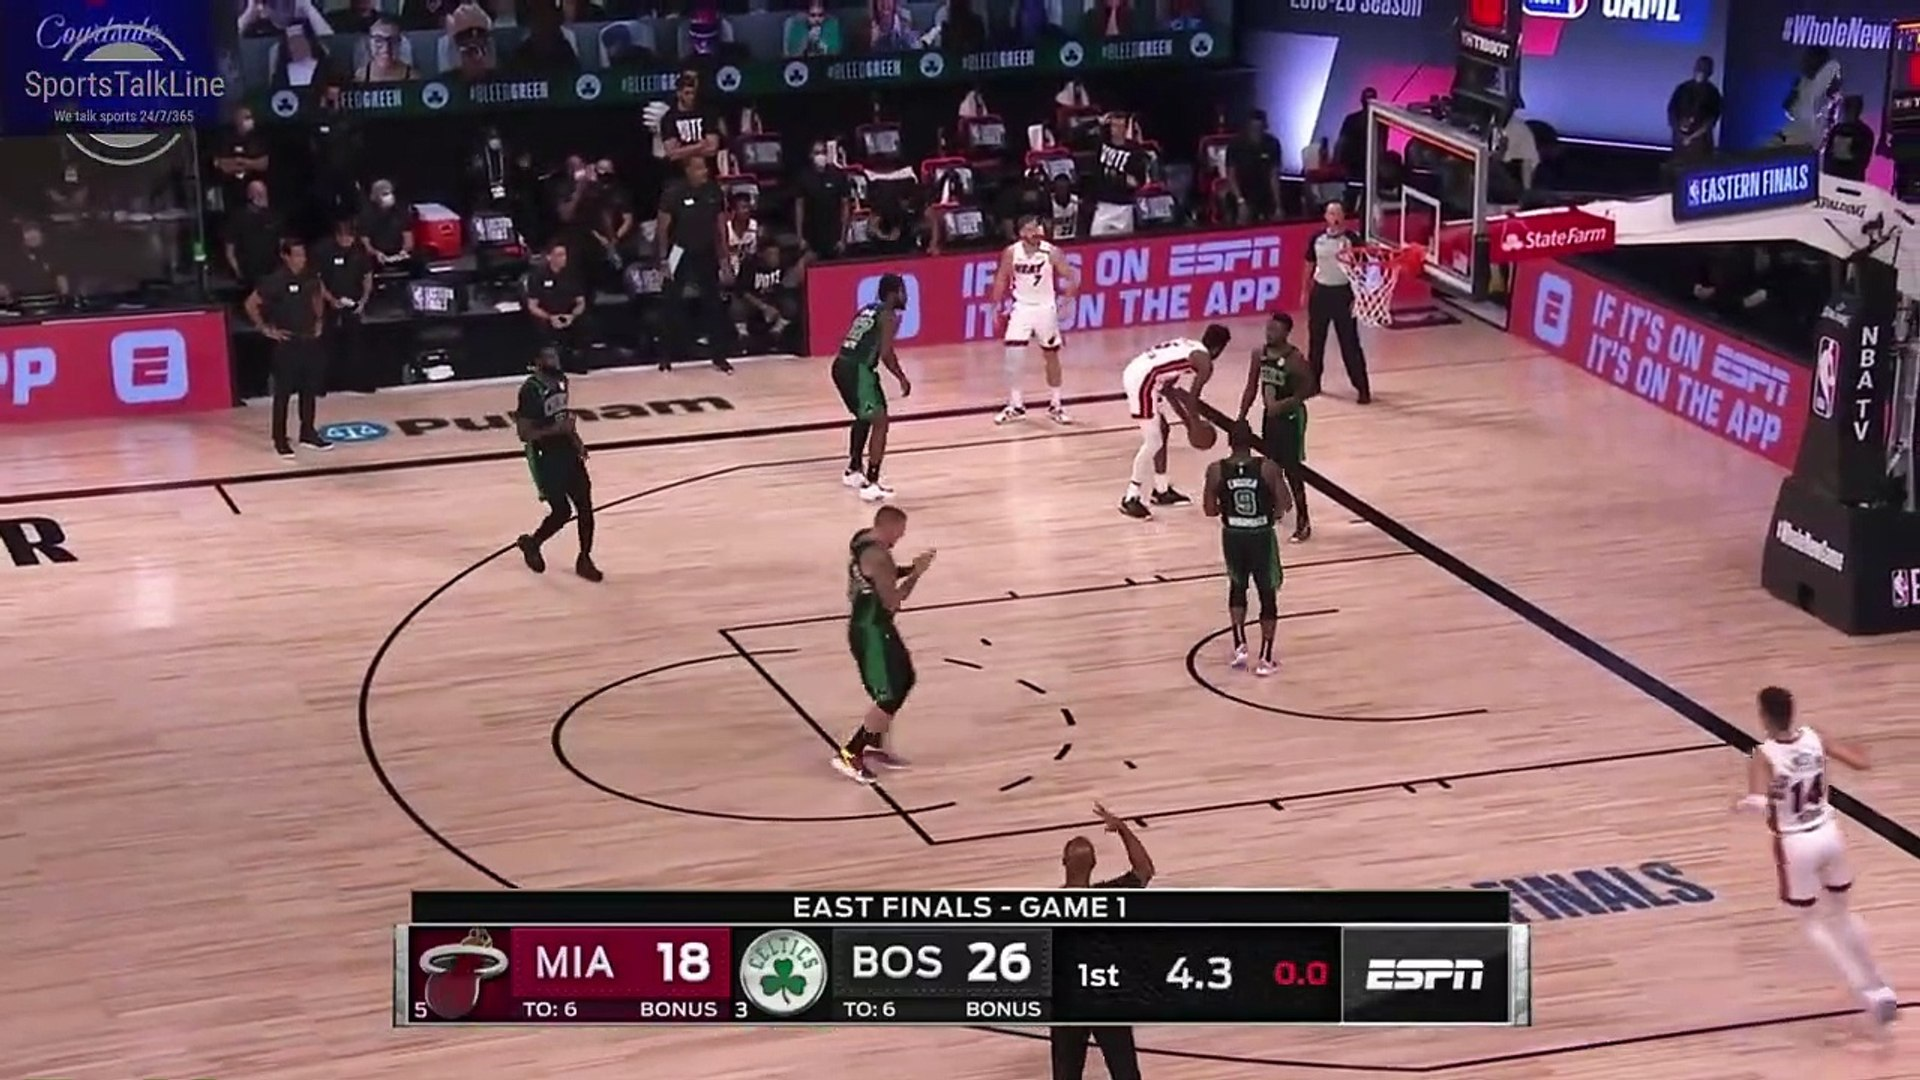 Heat vs Celtics HIGHLIGHTS Full Game + OT NBA Playoff Game 1 - video  dailymotion